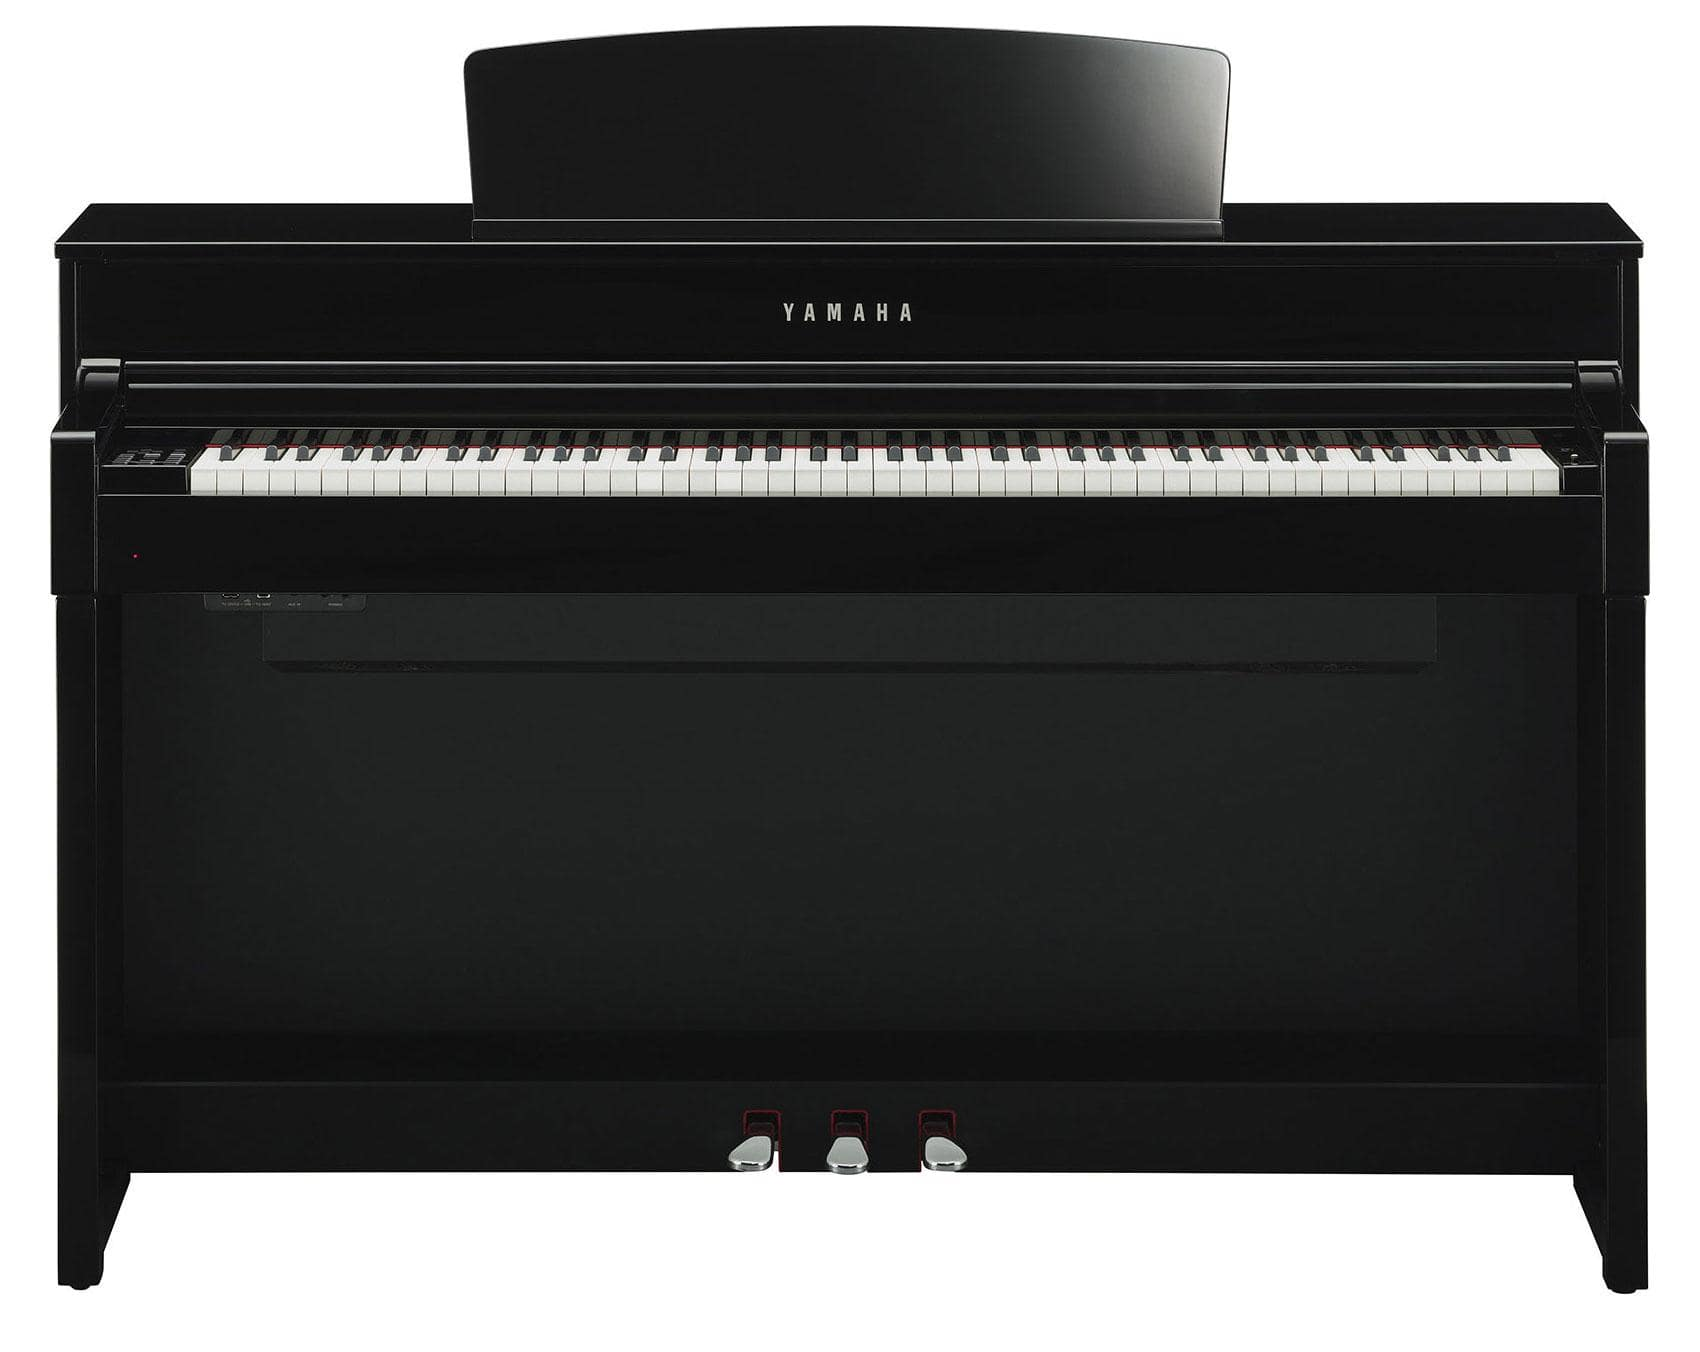 yamaha clp 575 pe digitalpiano schwarz hochglanz. Black Bedroom Furniture Sets. Home Design Ideas